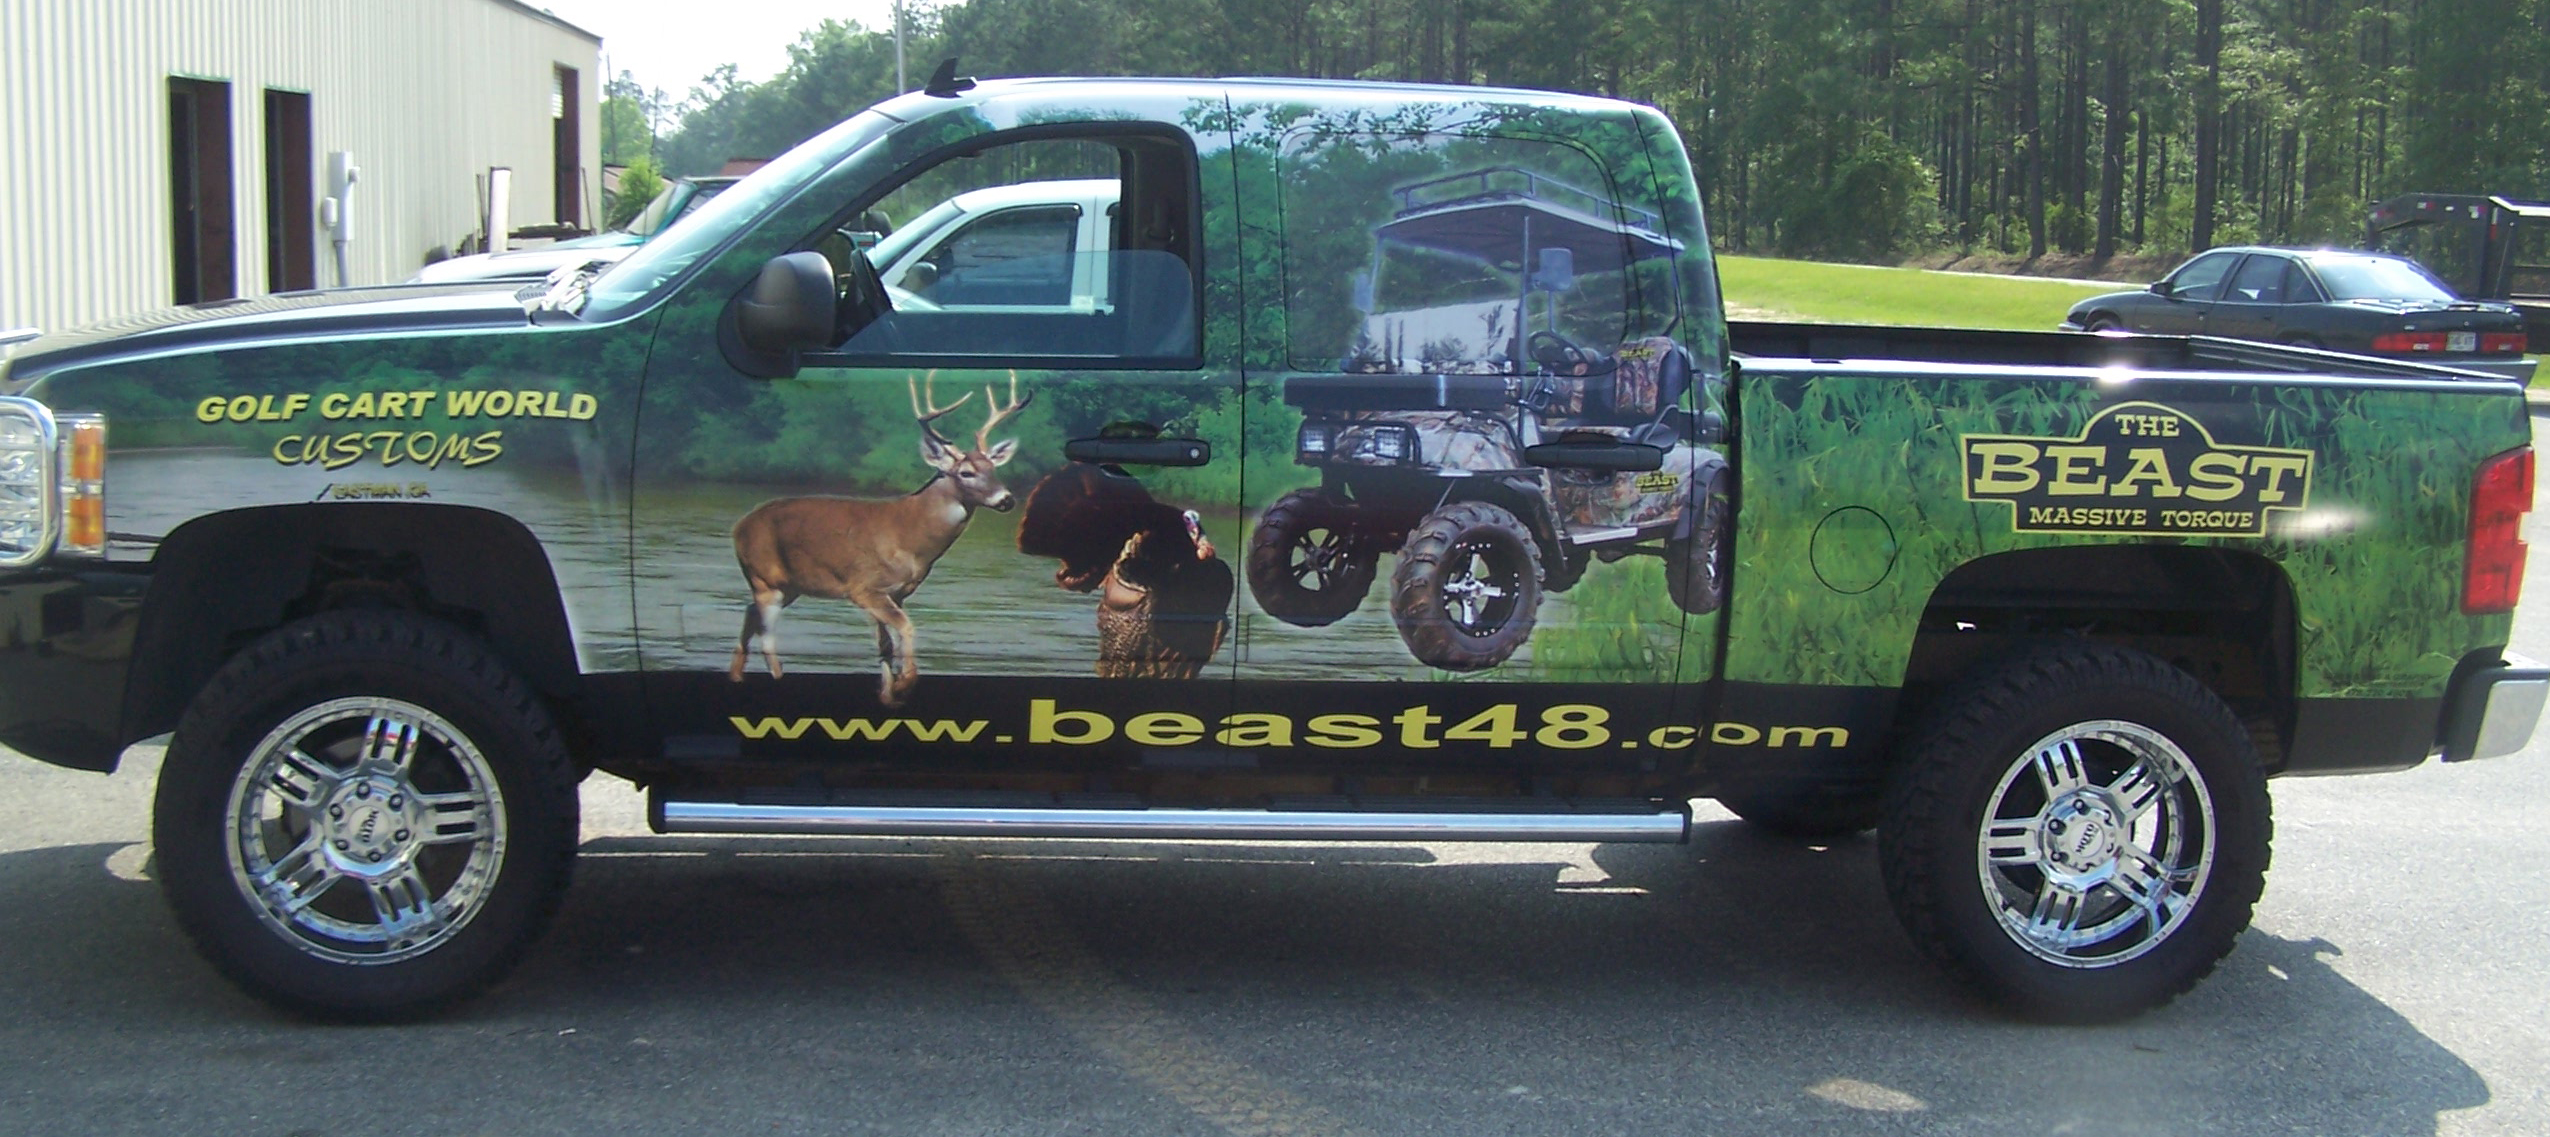 Custom truck,car,auto decals and graphics on decals for rv, decals for wheels, decals for clothing, decals for trucks, decals for horses, decals for buses, decals for cars, flame decals for go carts, decals for atvs, decals for mobility scooters, decals for glassware, decals for computers, decals for printers, decals for four wheelers, decals for schools, decals for skid steer, decals for automobiles, decals for mowers, decals for medical, decals for trailers,